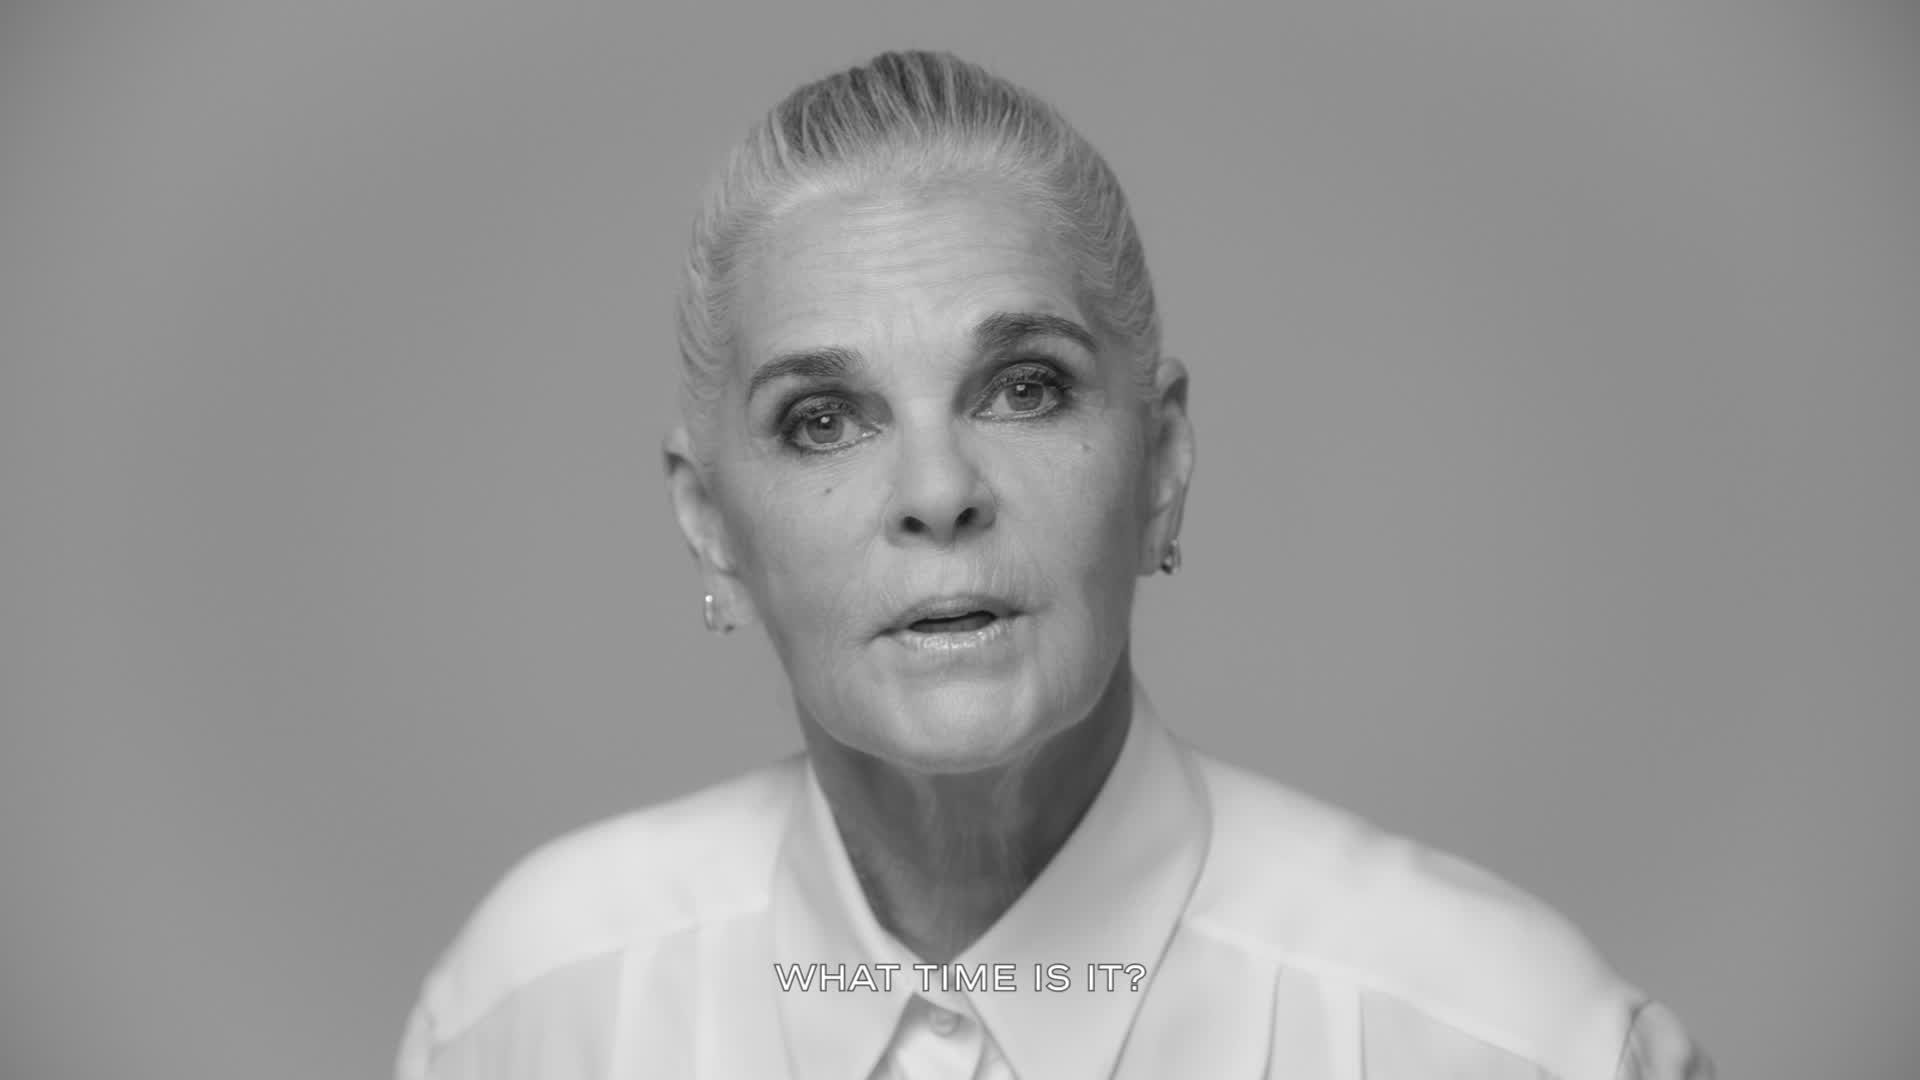 The 81-year old daughter of father (?) and mother(?) Ali MacGraw in 2020 photo. Ali MacGraw earned a  million dollar salary - leaving the net worth at  million in 2020